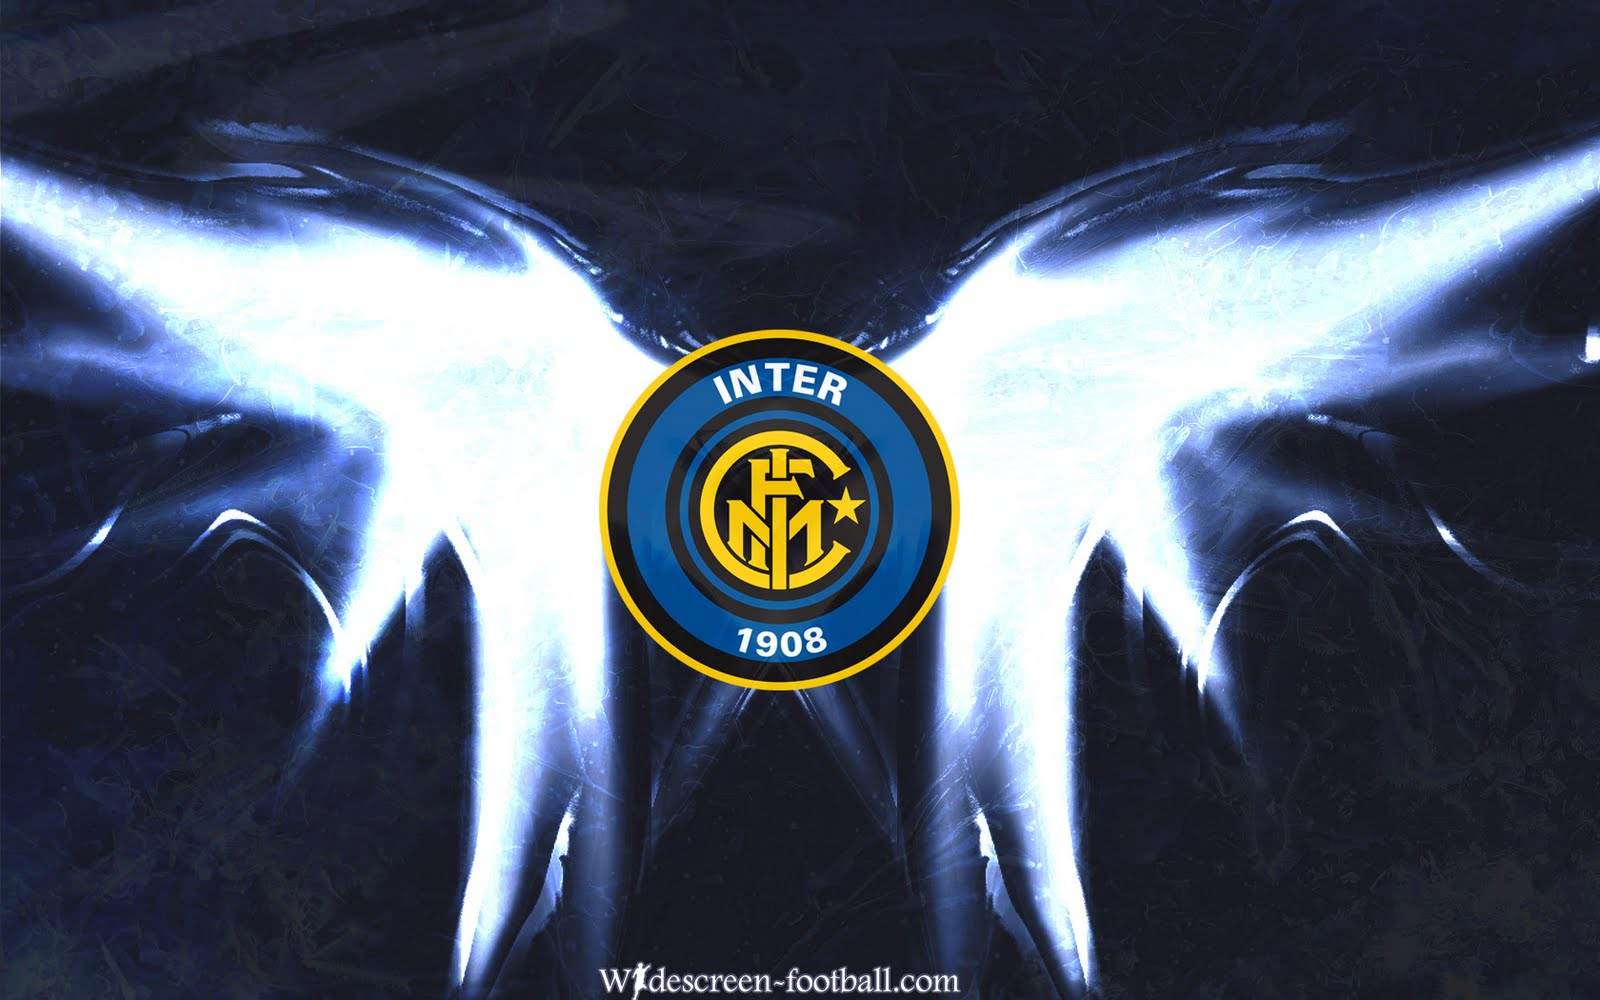 Free Download Inter Milan Fc Wallpaper Hd Hd Wallpapers Backgrounds Photos 1600x1000 For Your Desktop Mobile Tablet Explore 50 Inter Milan Wallpaper Ac Milan Wallpaper Android Inter Milan Wallpaper